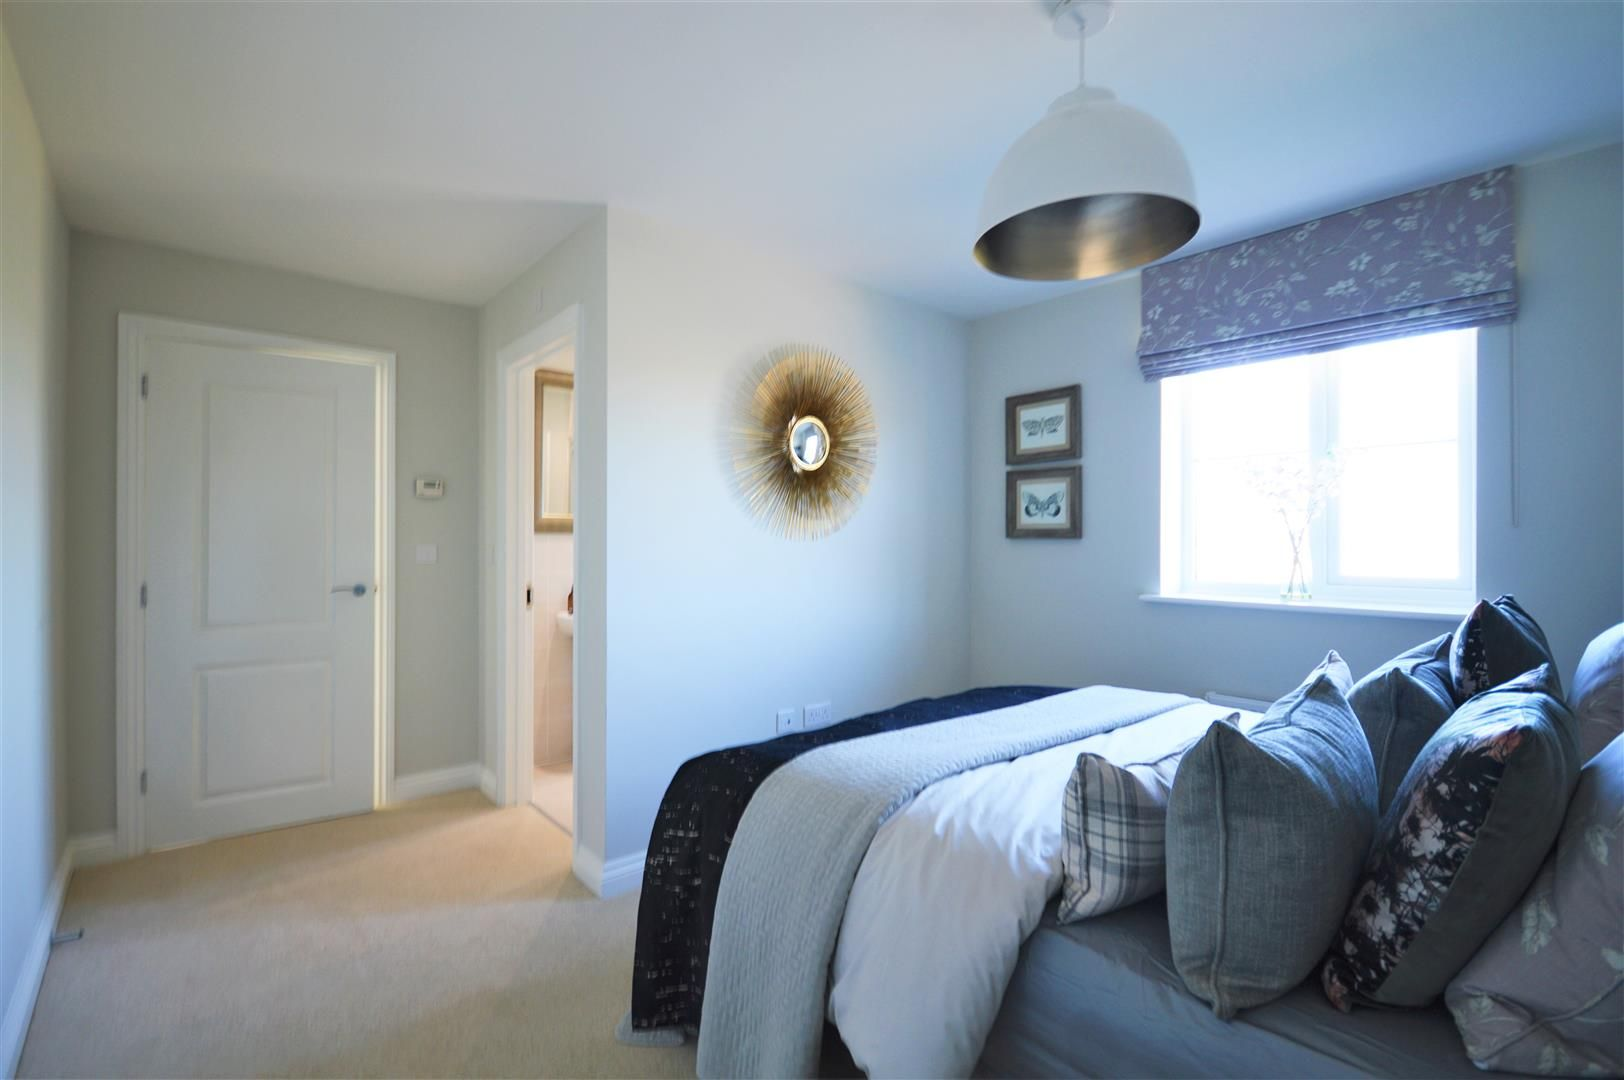 4 bed detached for sale in Kingstone 7